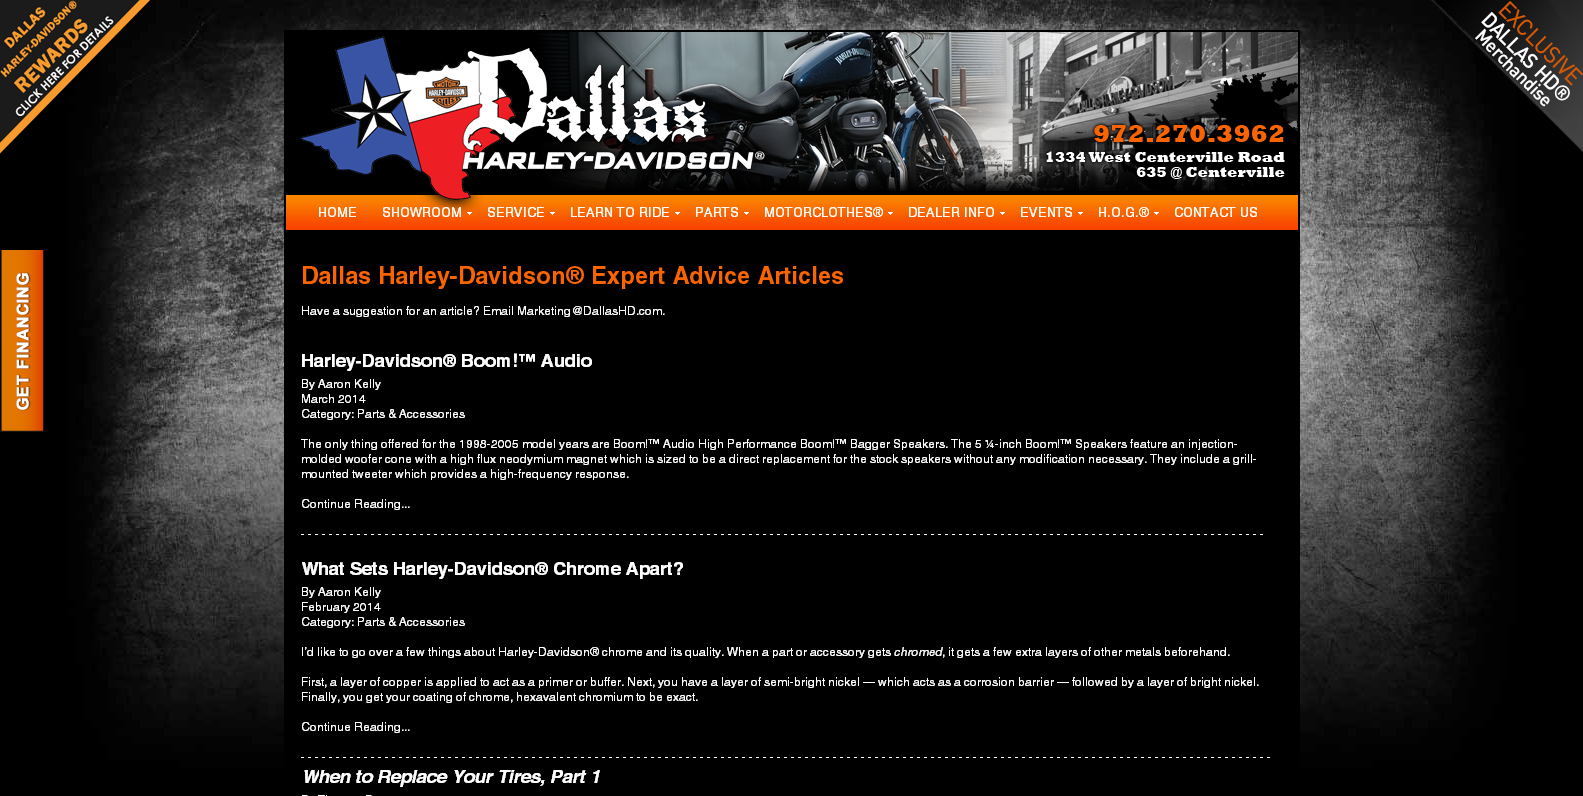 dallashd.com advice articles